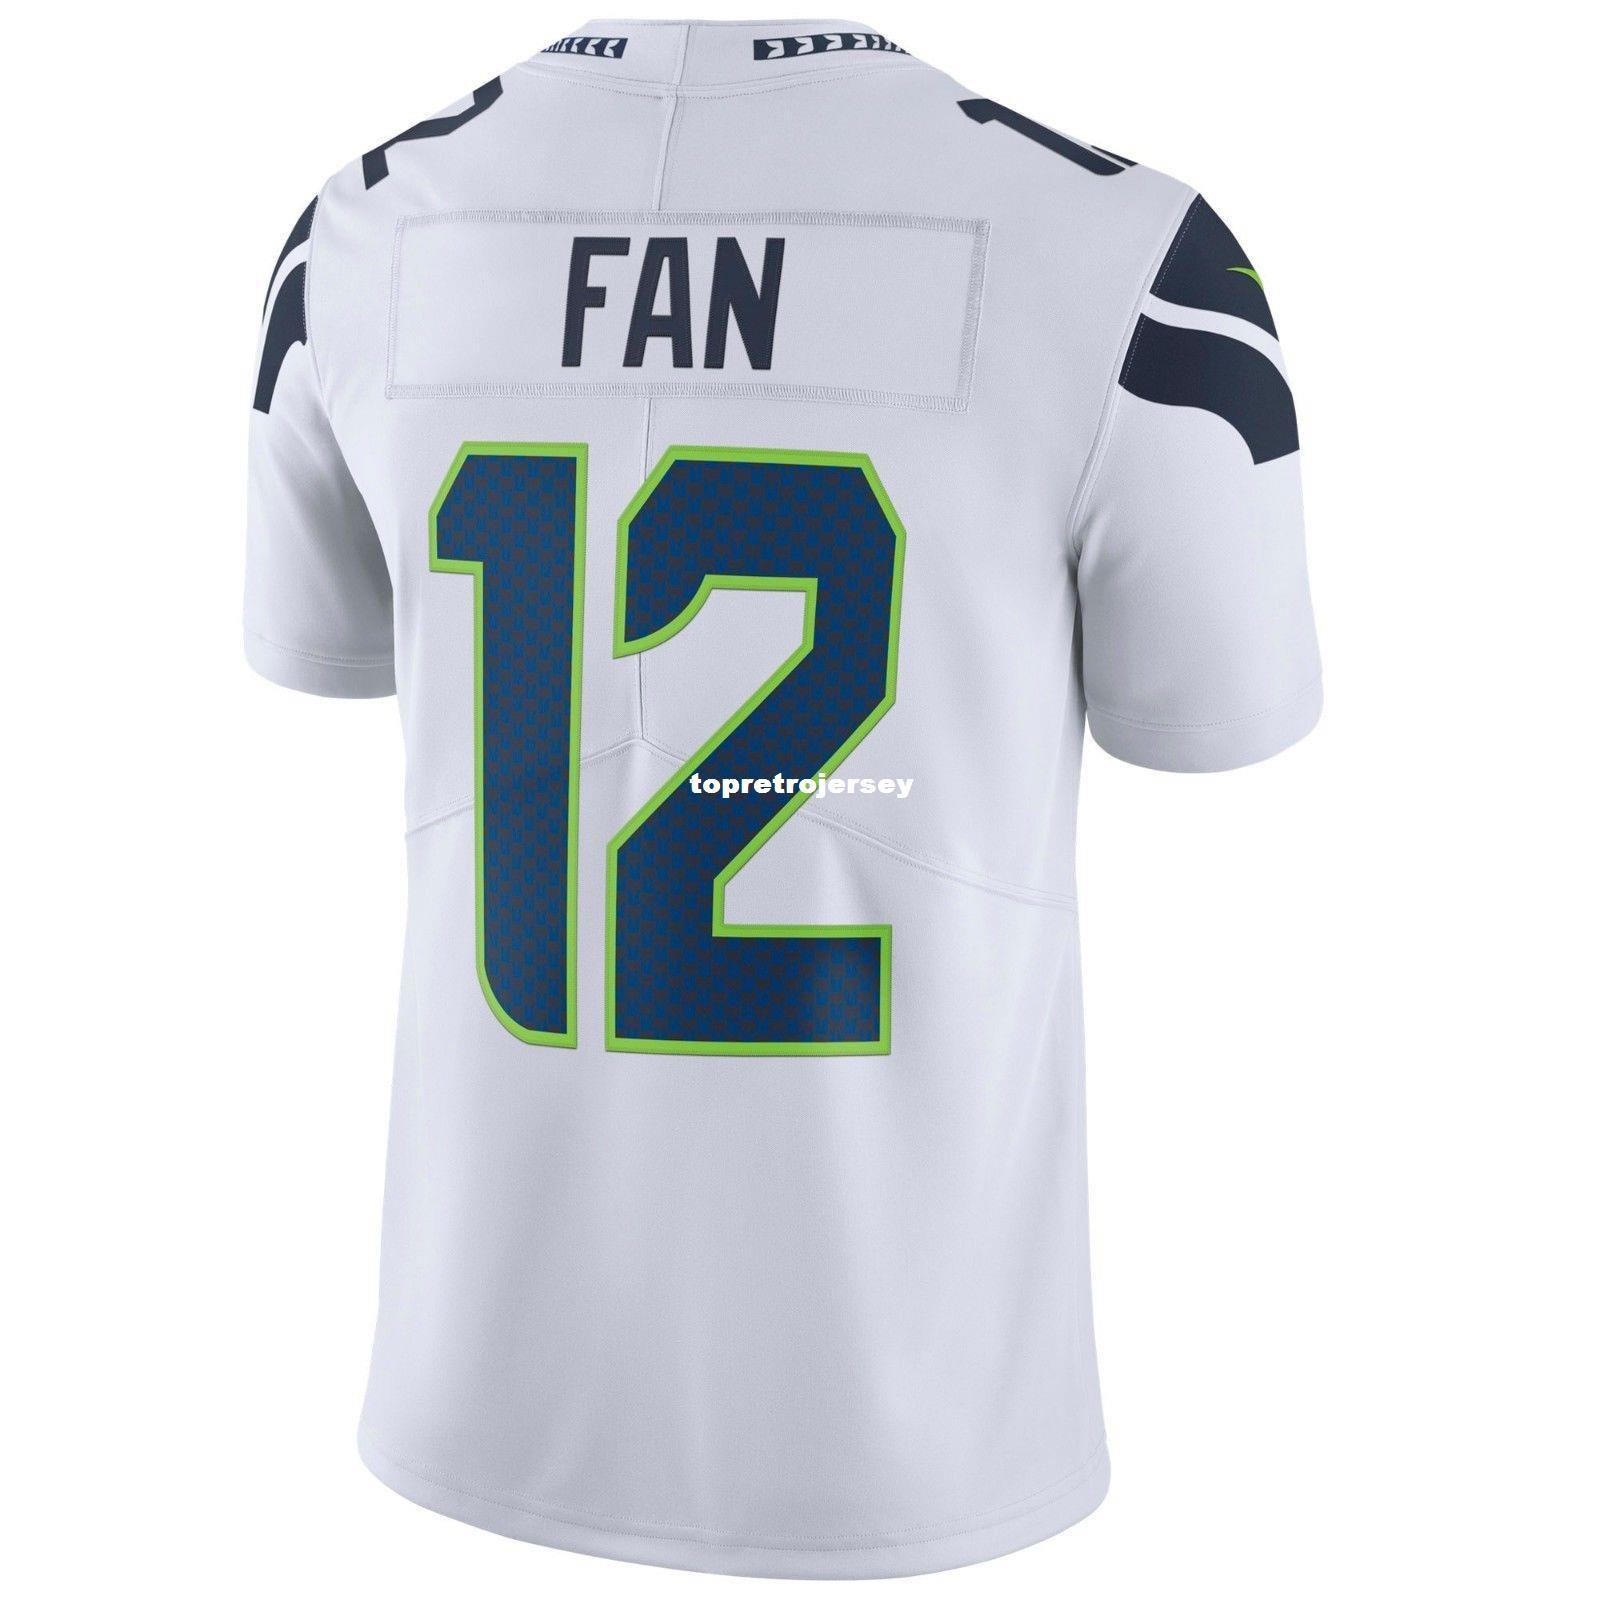 2019 Cheap Stitching Custom Top SS Man MF  12 WHITE Vapor Untouchable  Limited Edition Jersey Big And Tall Size XS 4XL 332c89afb